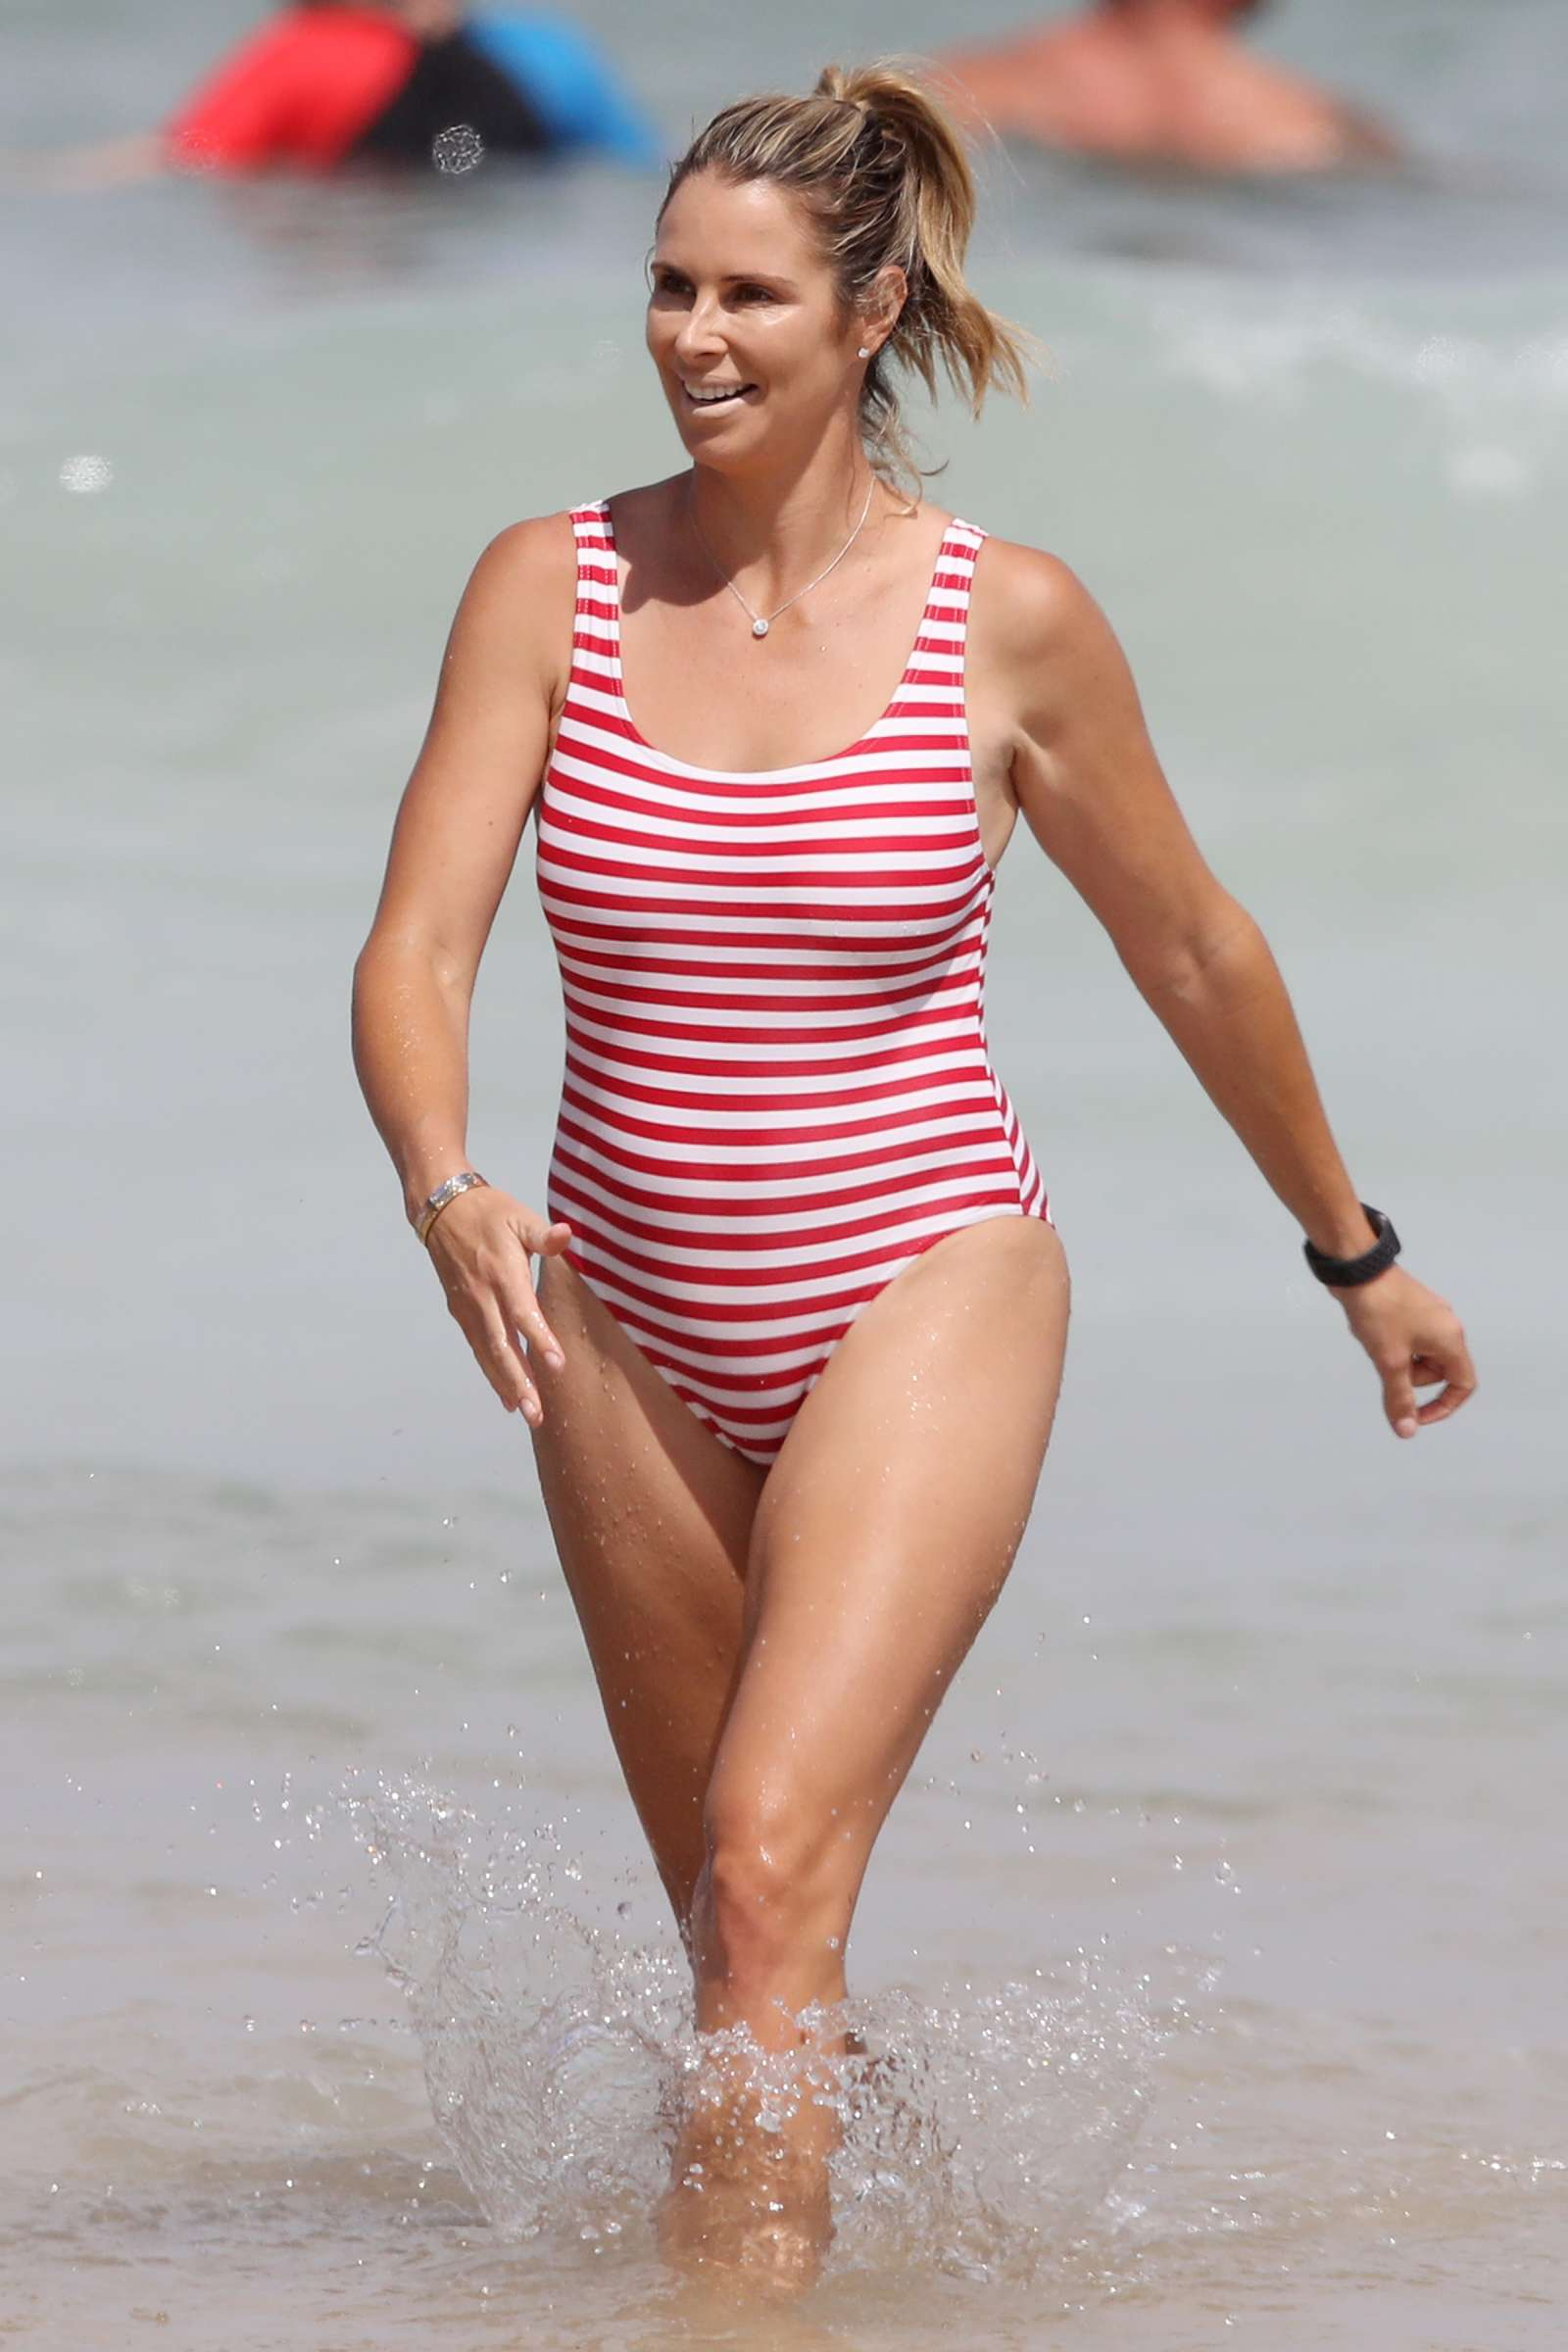 Candice Warner 2019 : Candice Warner in Red and White Swimsuit 2019 -07